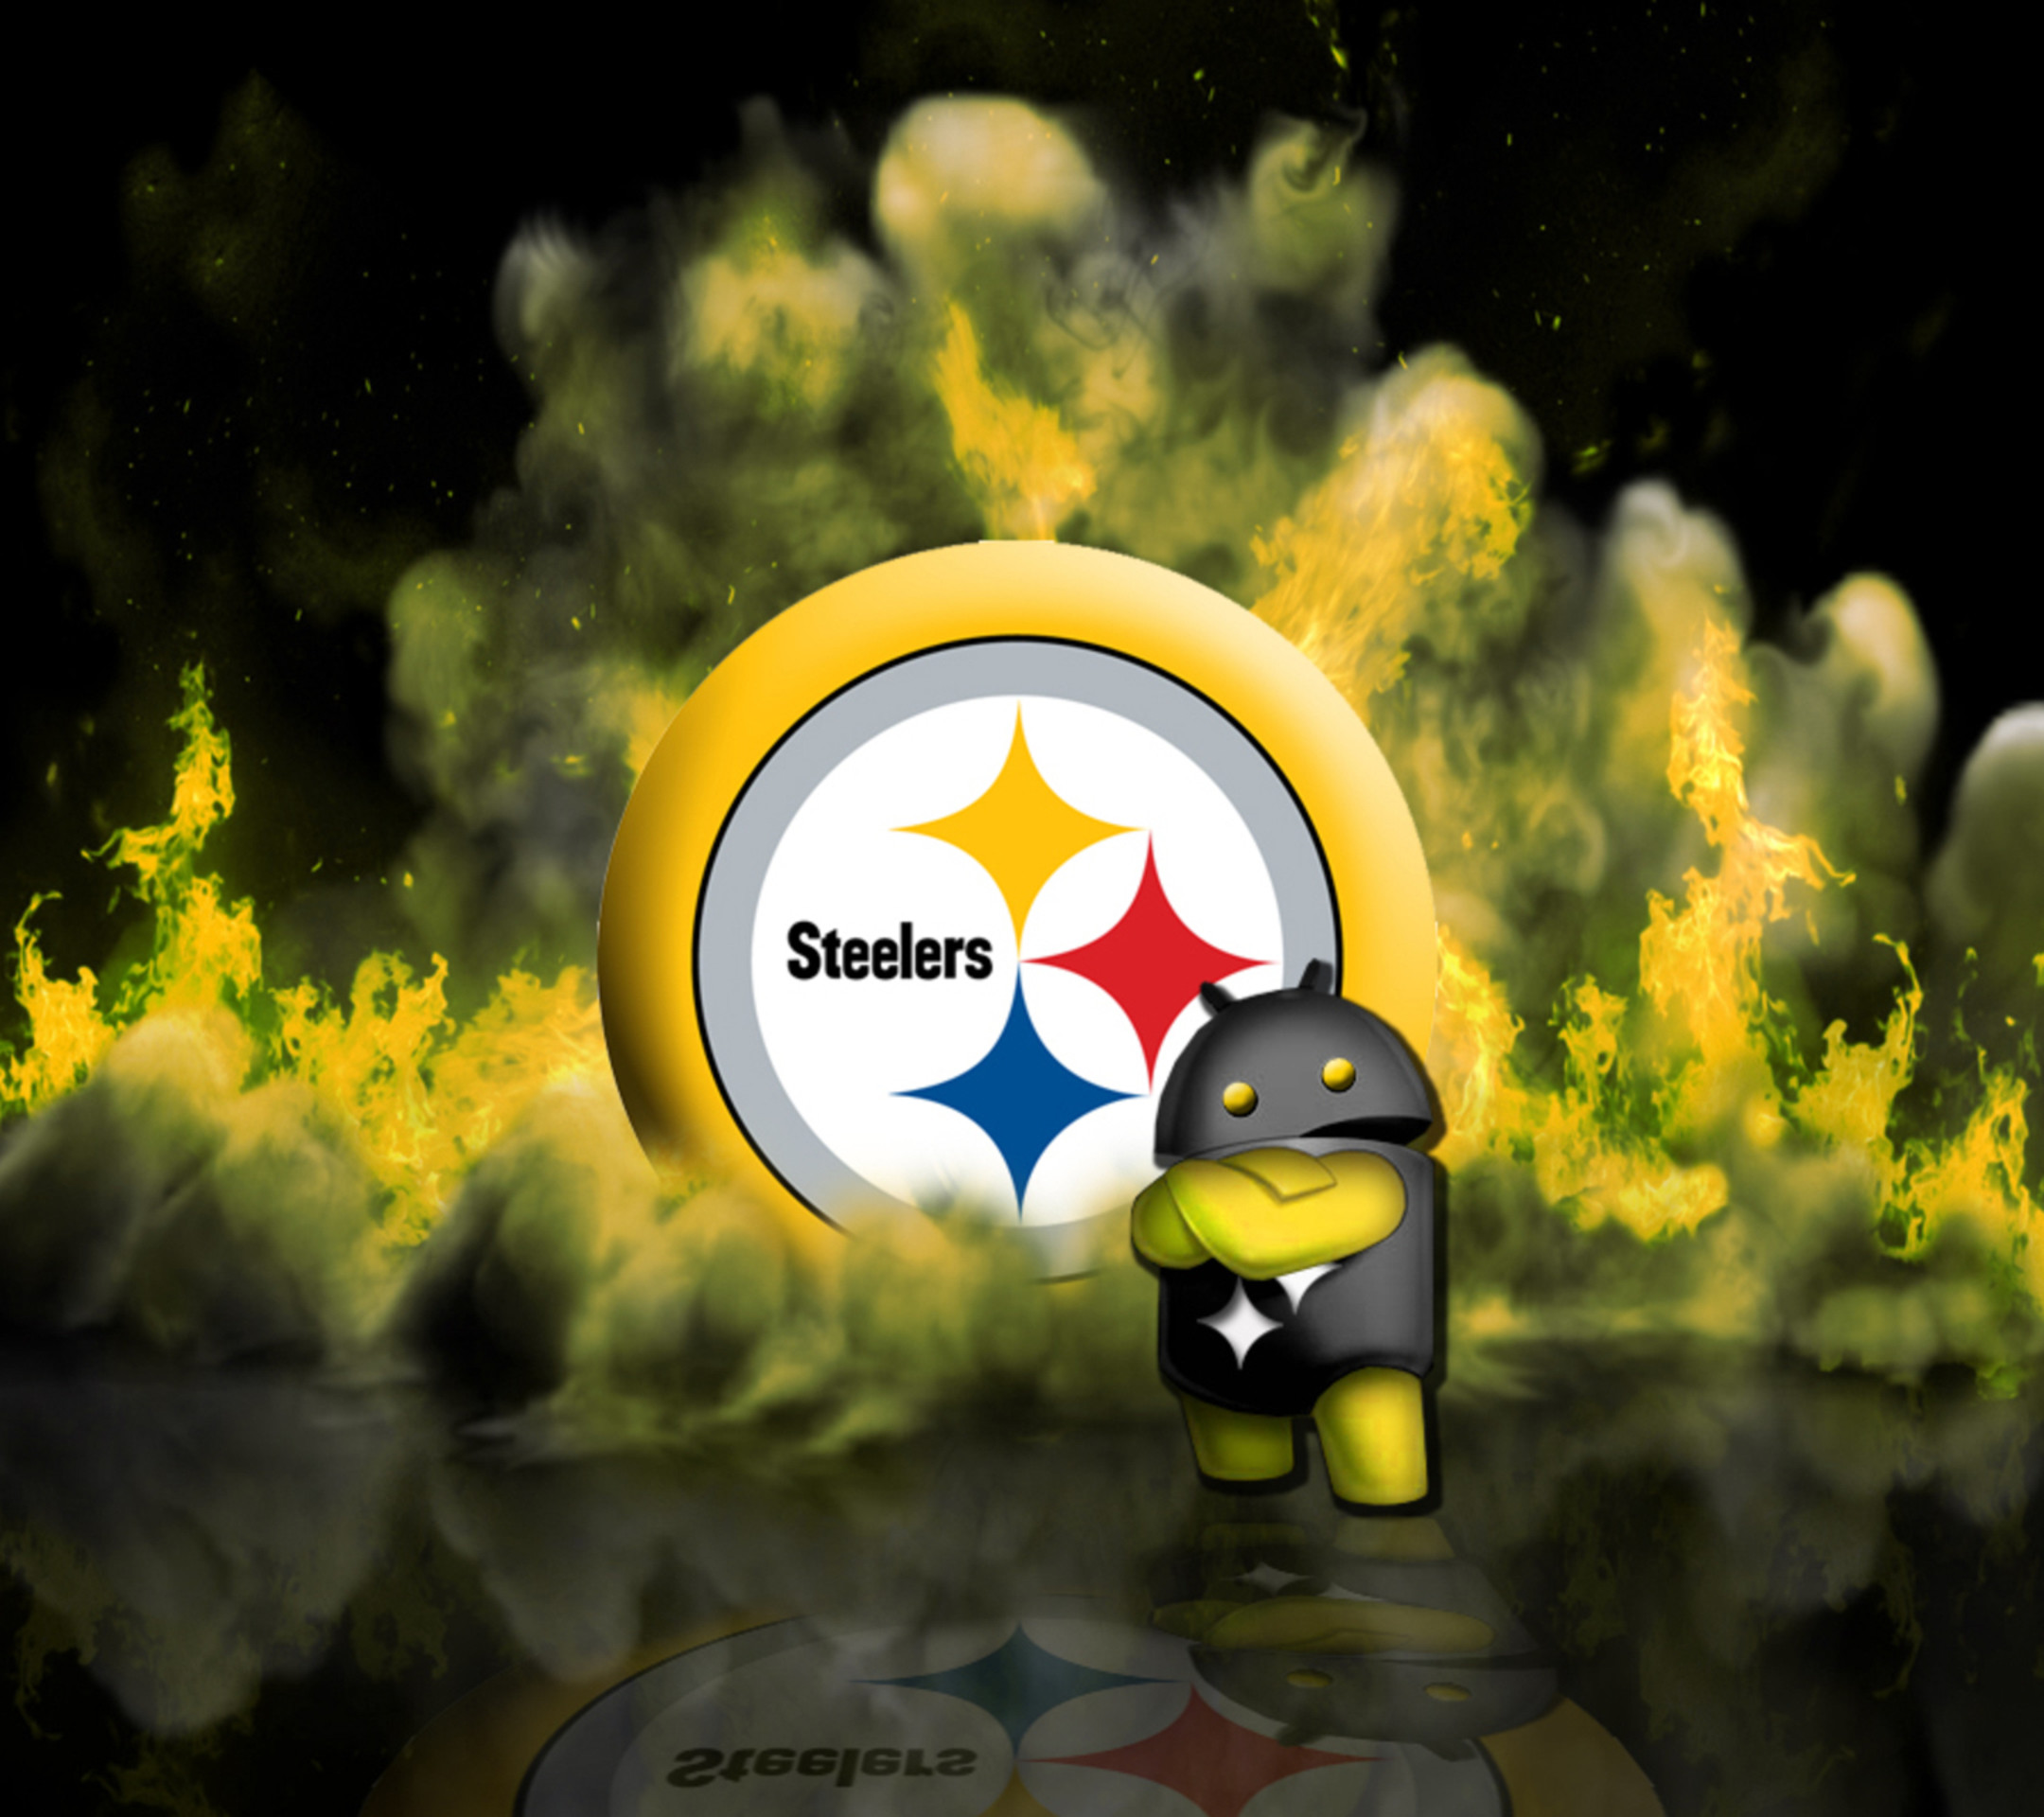 Steelers christmas wallpaper 55 images - Steelers background ...